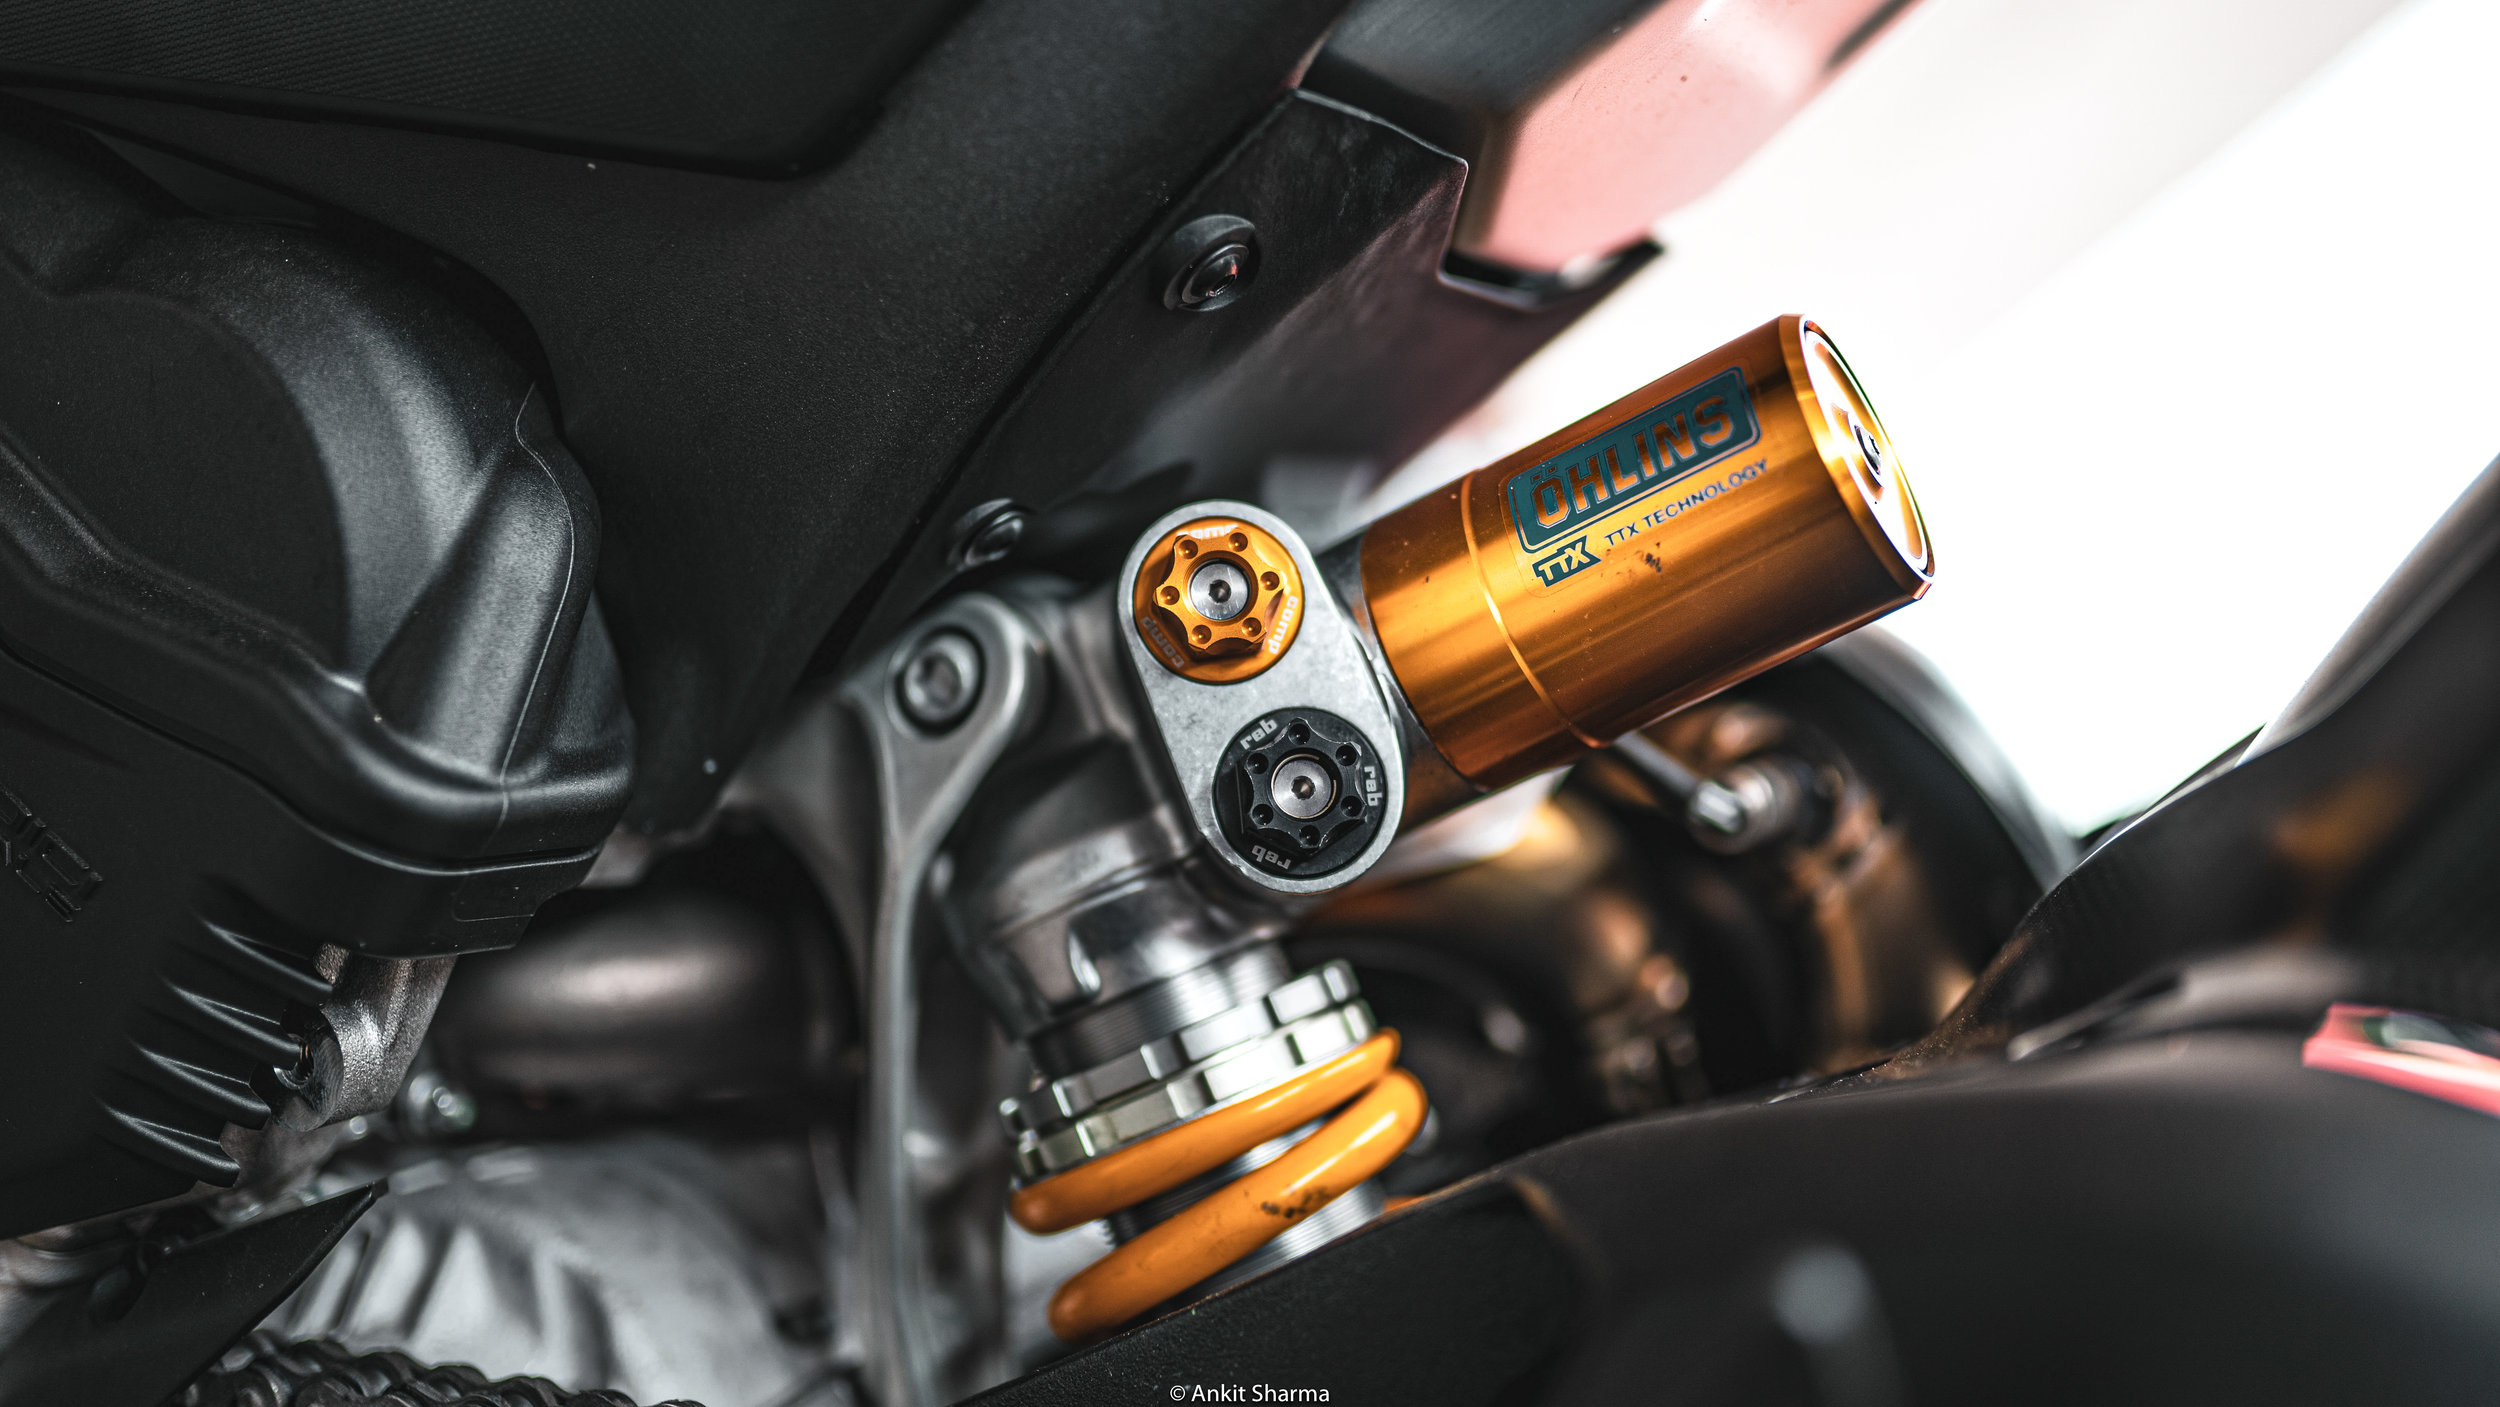 The Ohlins TTX 36 Rear shock are just like that one friend we always annoy when we are under pressure- a friend who always handles things with ease. Because your friend can handle a lot of pressure. The more force your shock can handle, the less unnecessary force you put out in your tires.